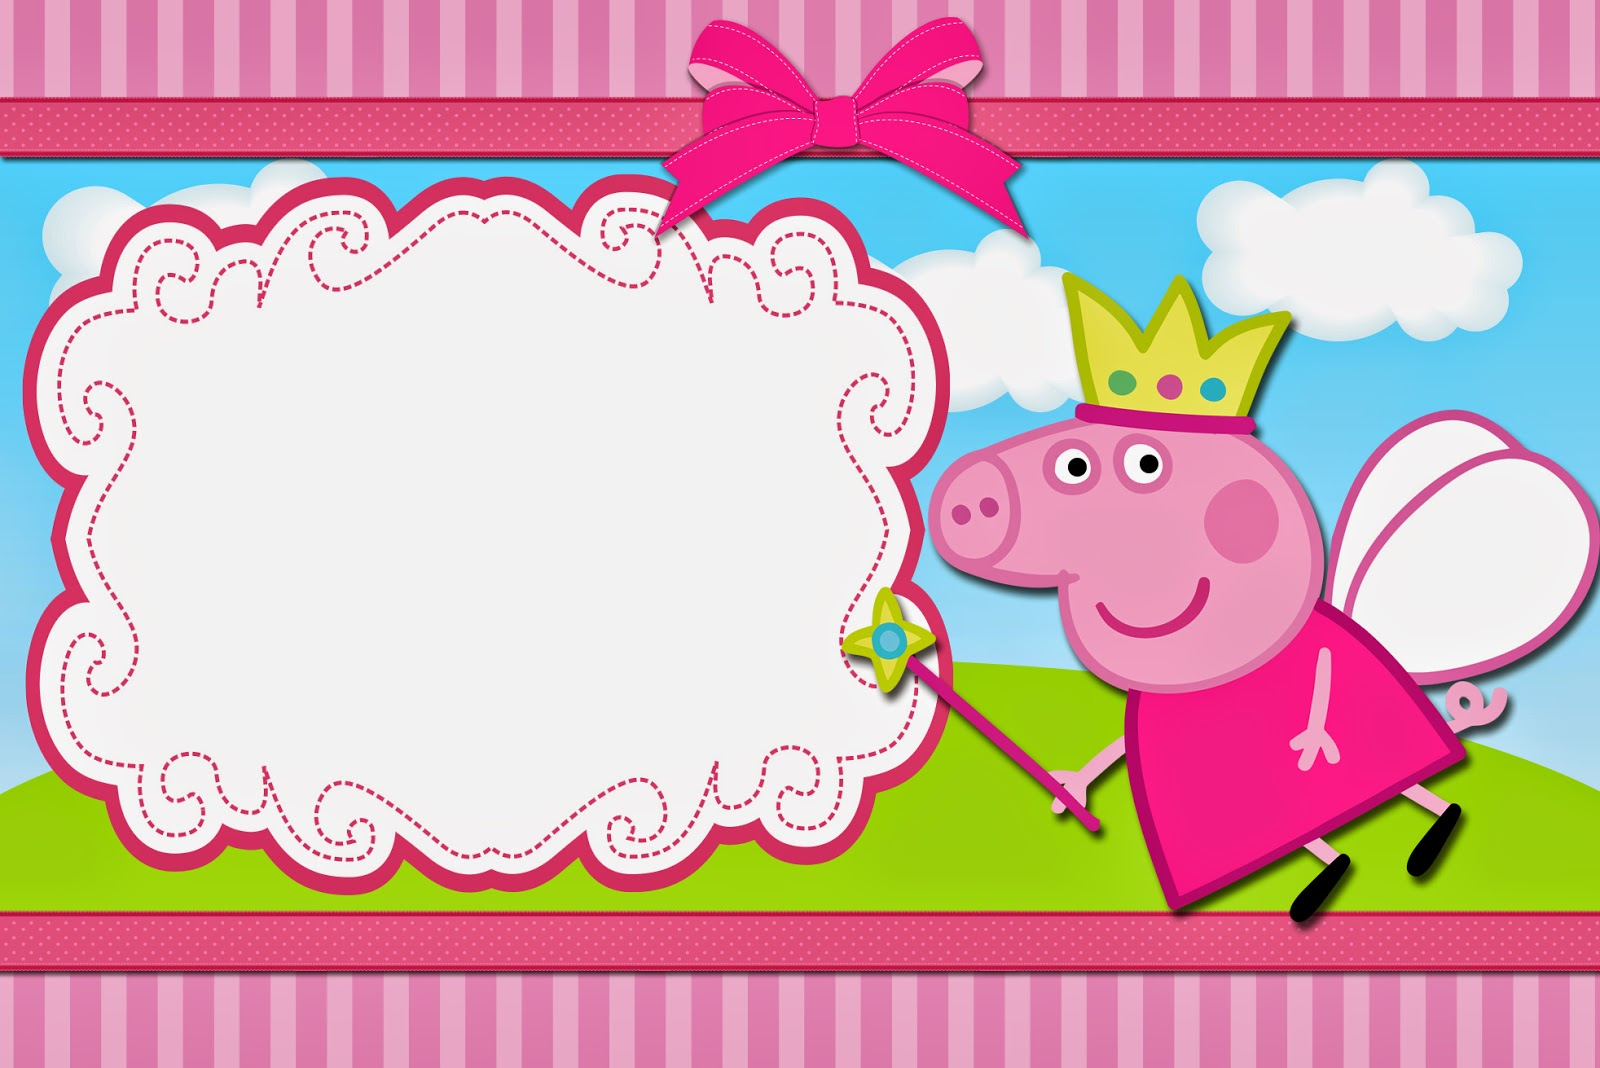 Peppa Pig Fairy: Free Printable Invitations. | Oh My Fiesta! In English - Peppa Pig Birthday Banner Printable Free